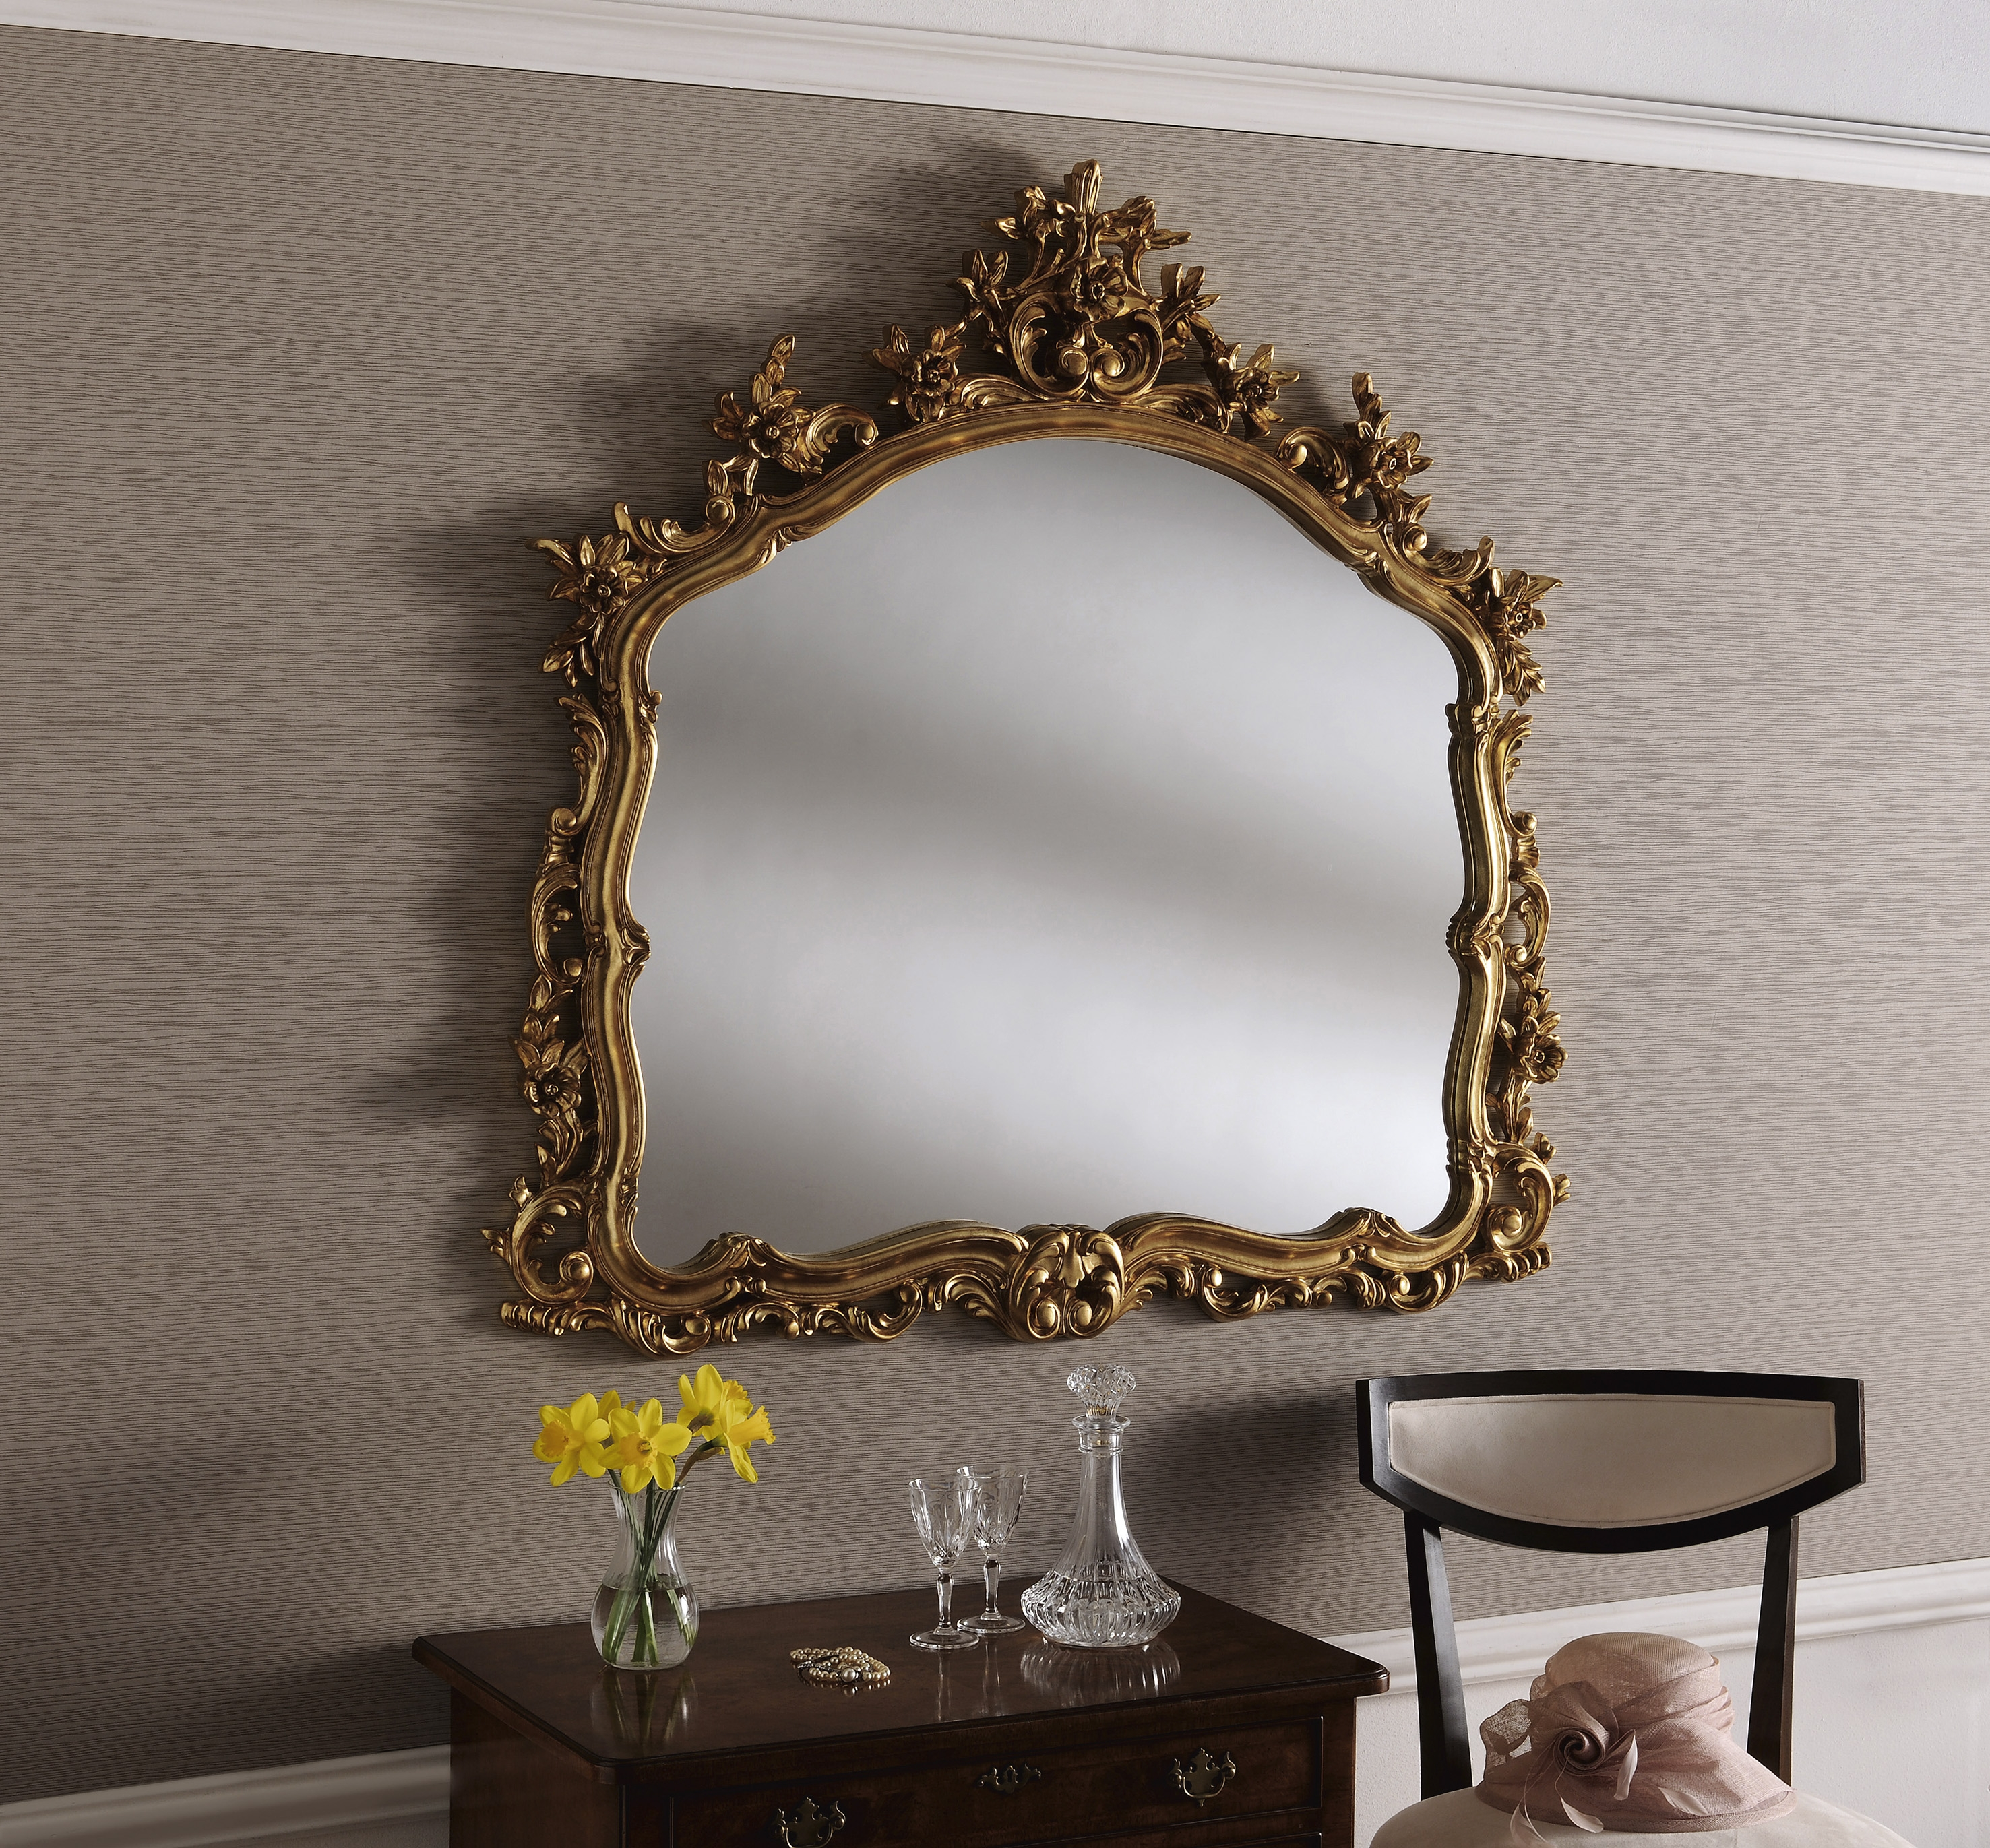 Large Gold Mirror Full Image For Large Decorative Mirror Elegant With Regard To Ornate Gilt Mirrors (Image 8 of 15)